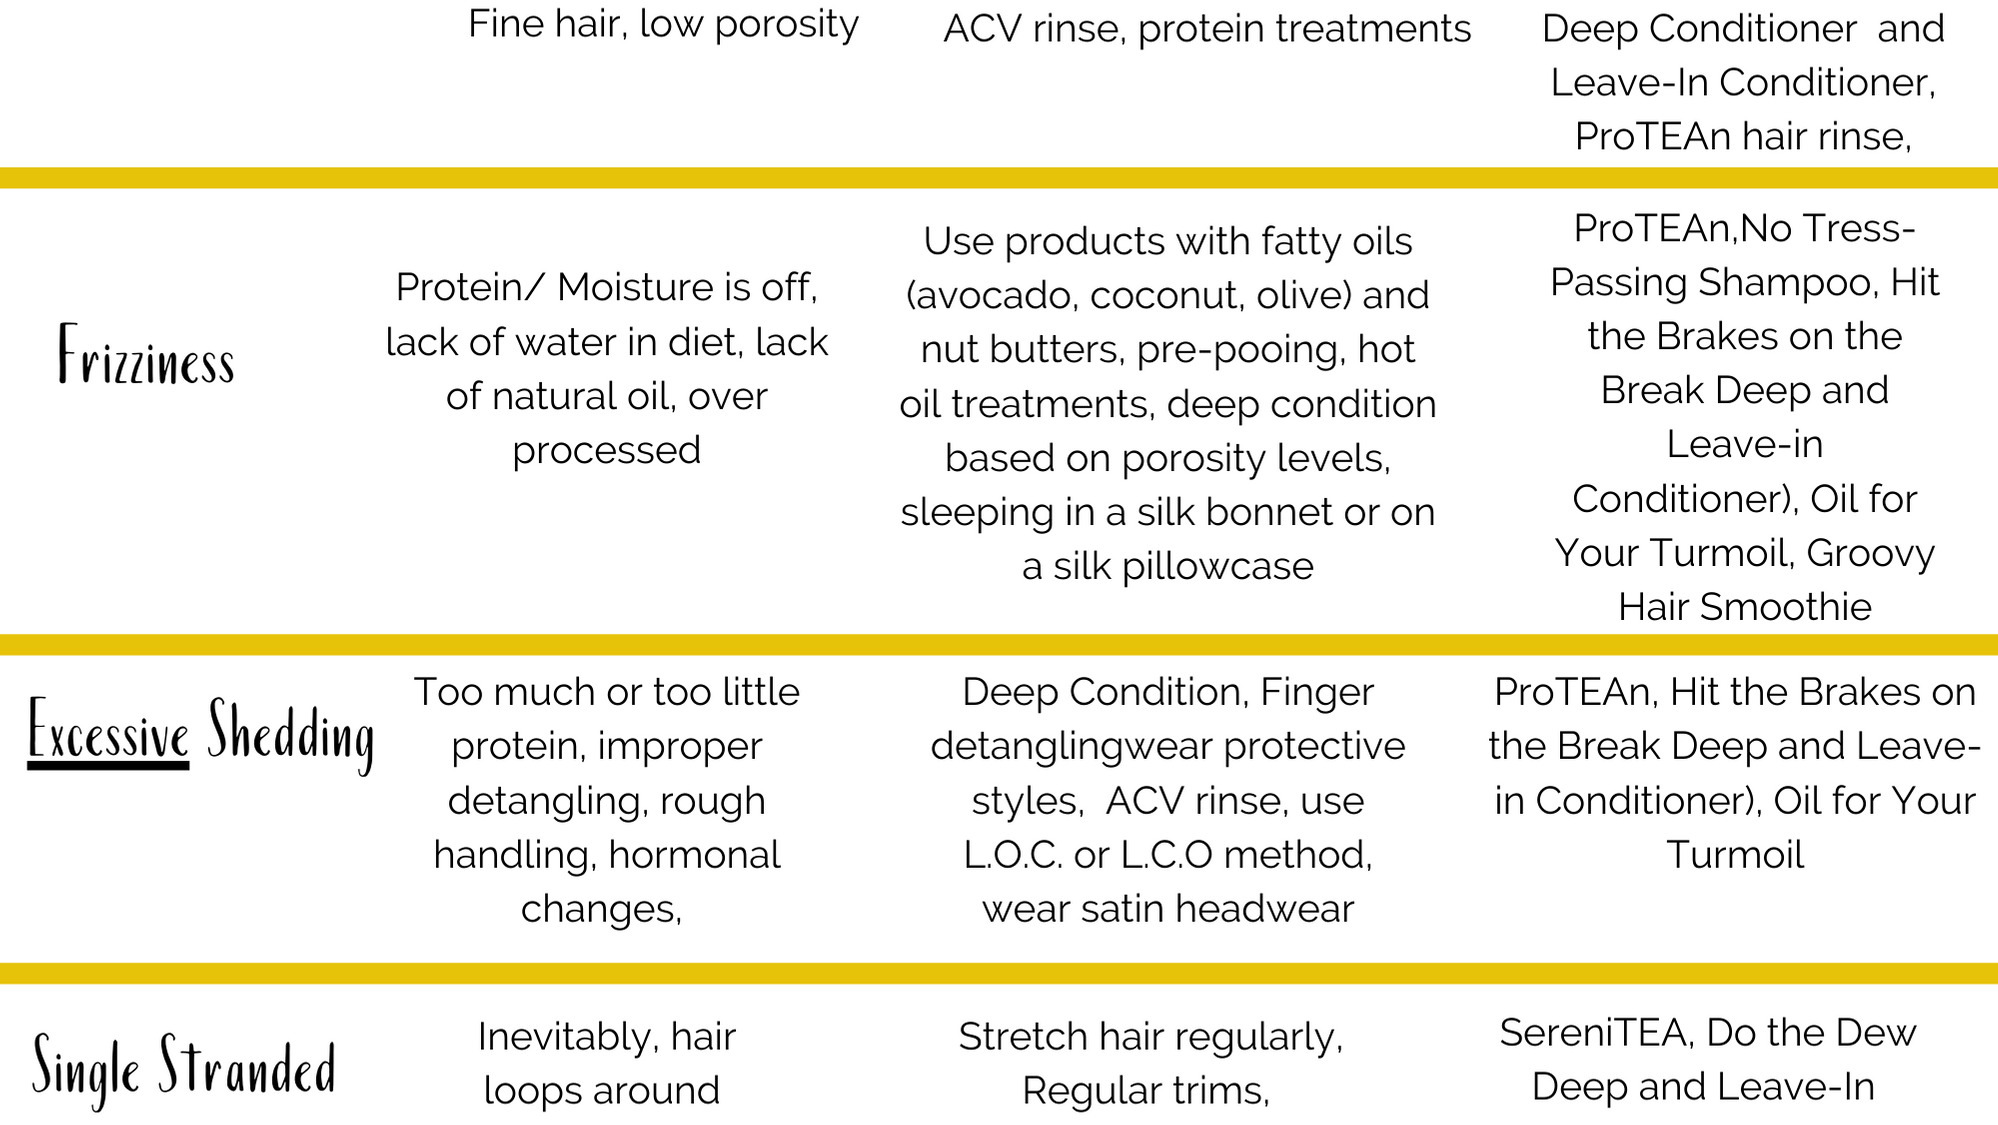 causes and remedies for breakage, single stranded knots and limp hair